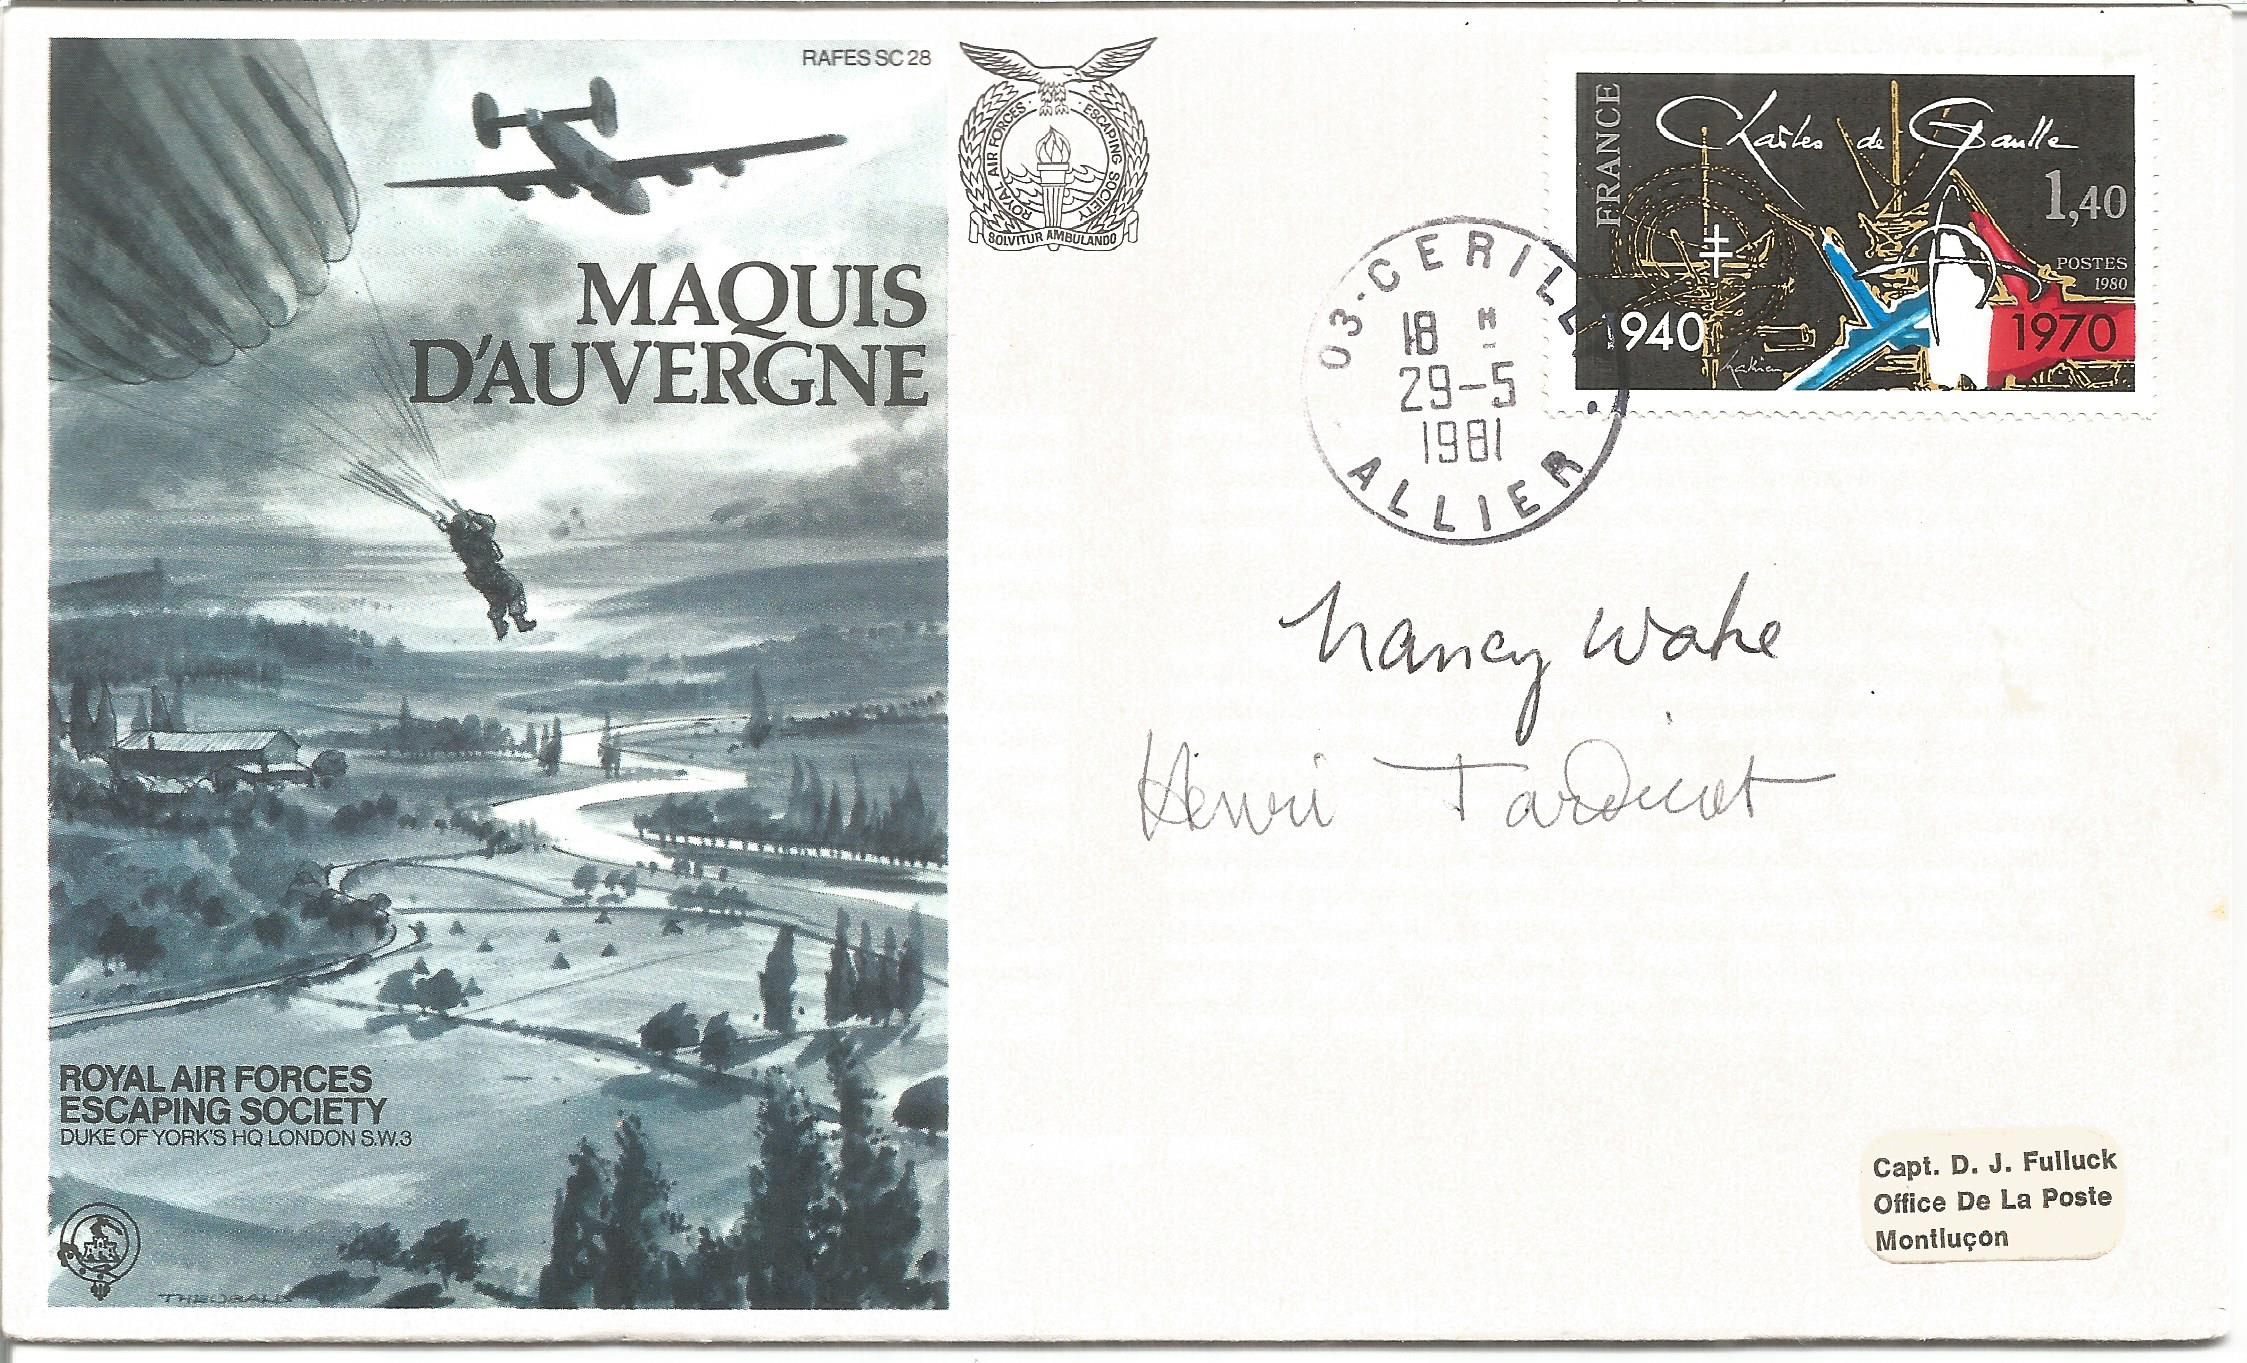 Nancy Wake and Henri Tardivat signed Maquis D'Auvergne Rafes cover No. 940 of 1192. Carried by